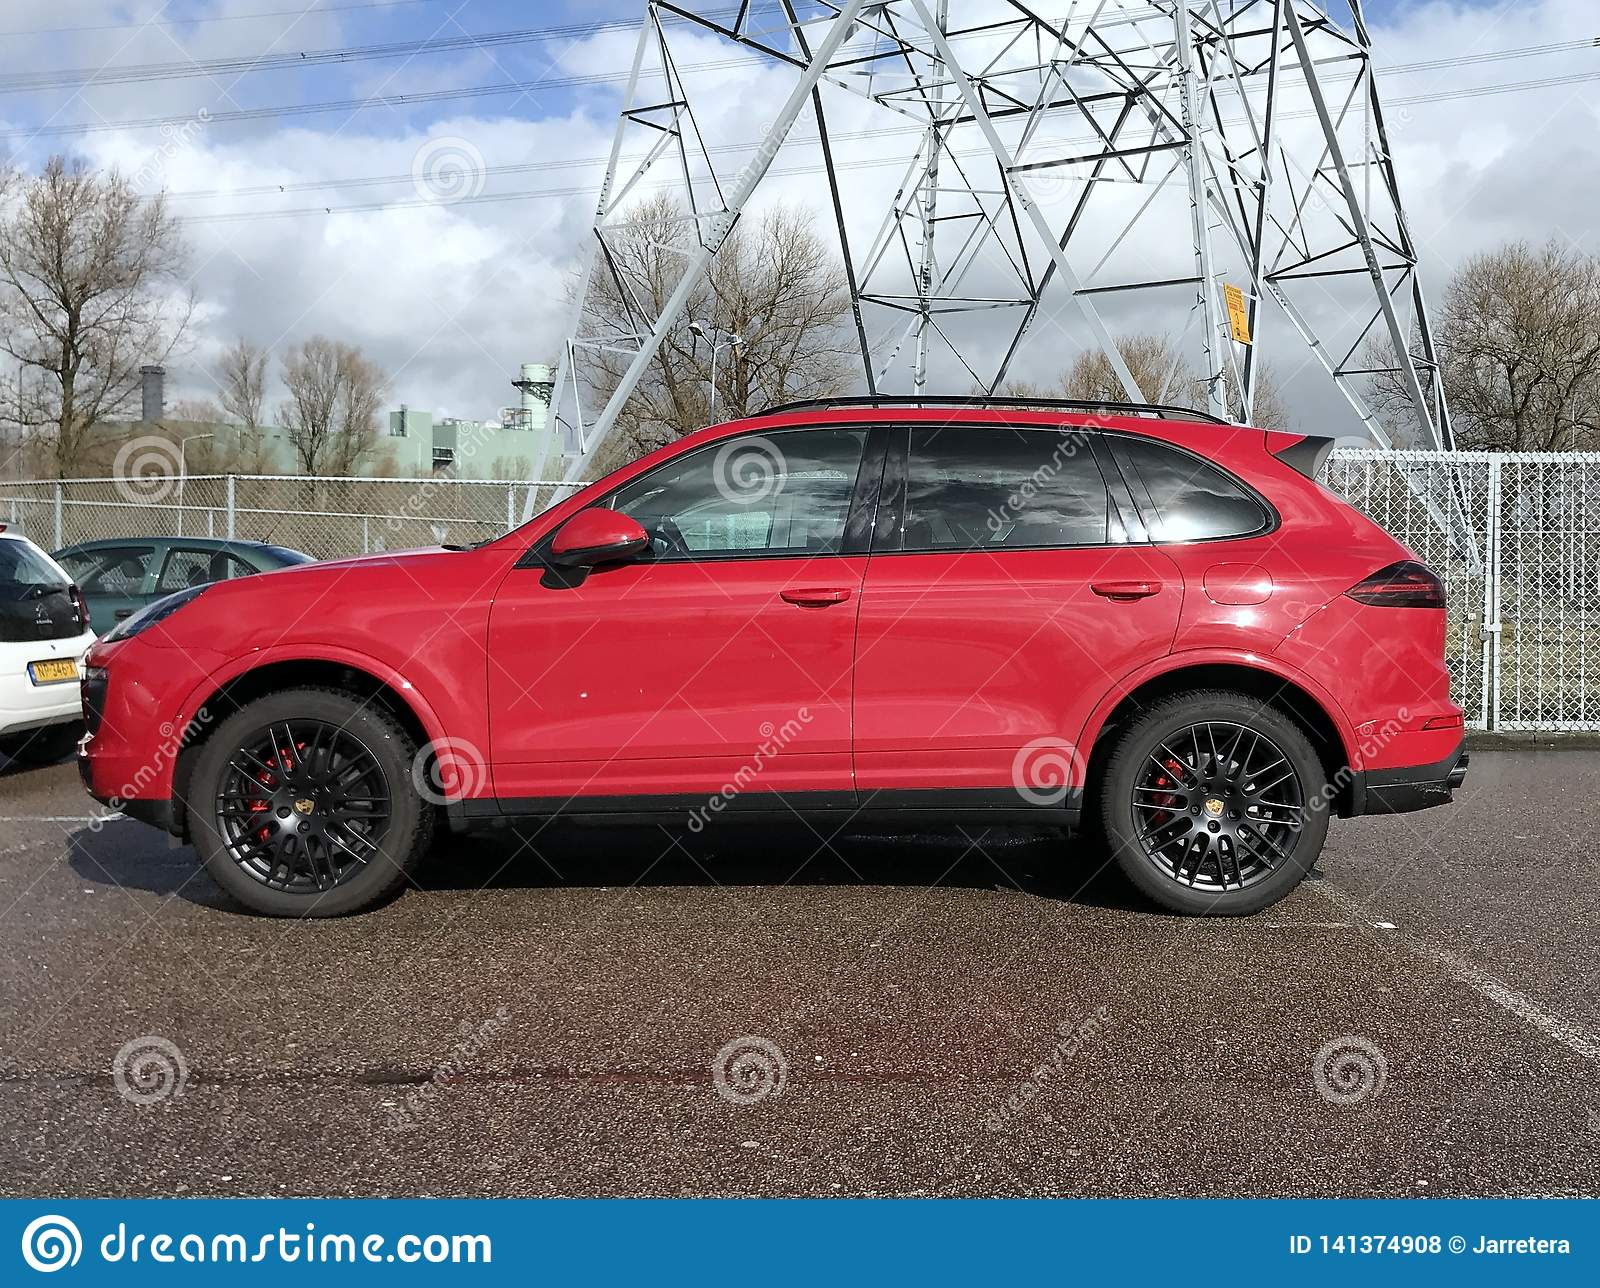 183 Red Porsche Cayenne Photos Free Royalty Free Stock Photos From Dreamstime